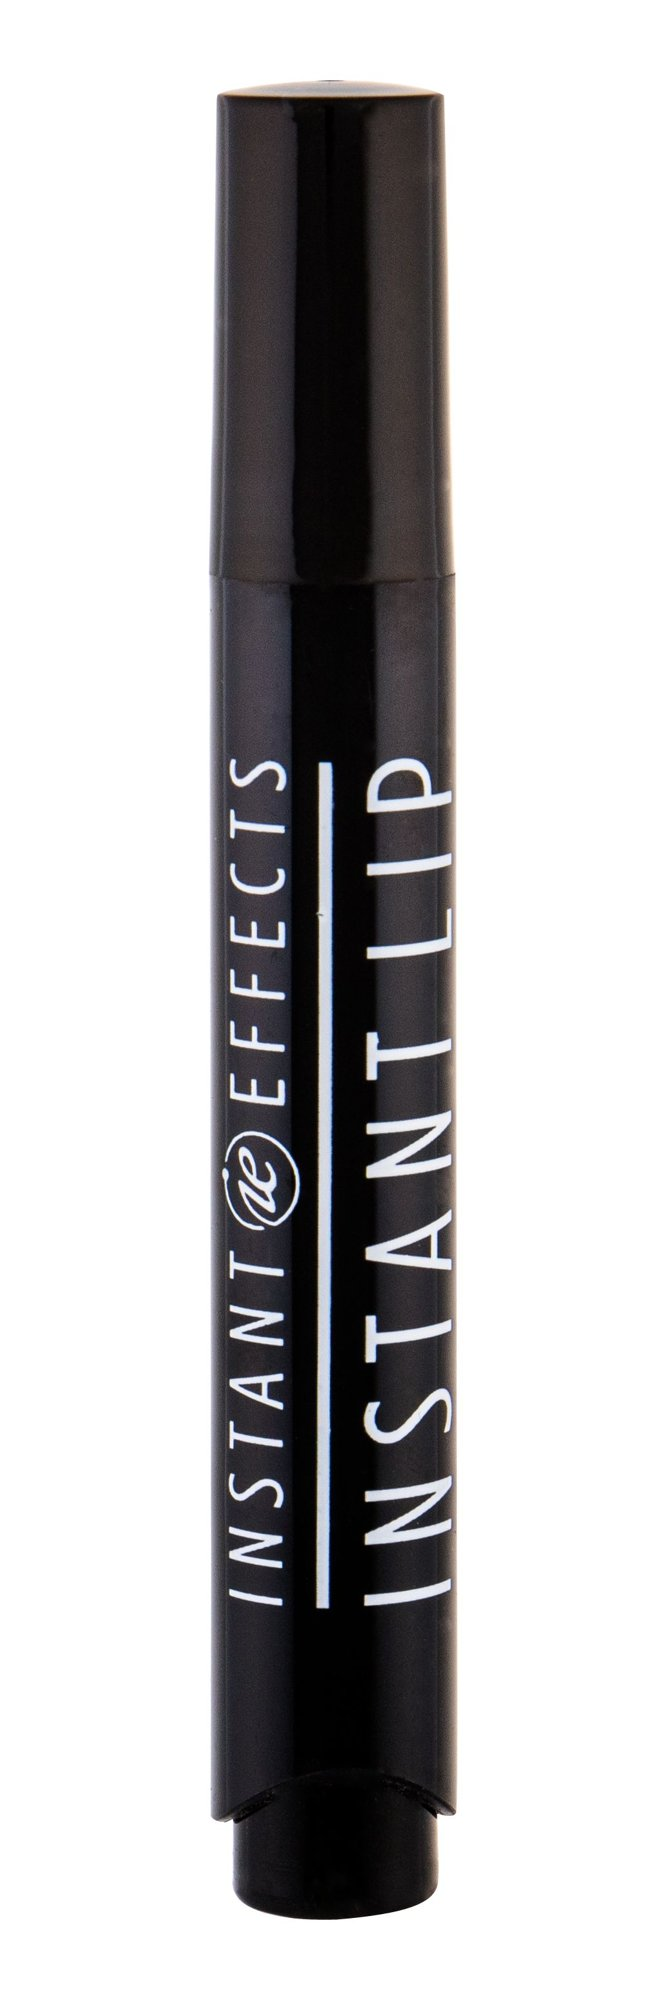 Instant Effects Instant Lip Plumper Lip Gloss 5ml